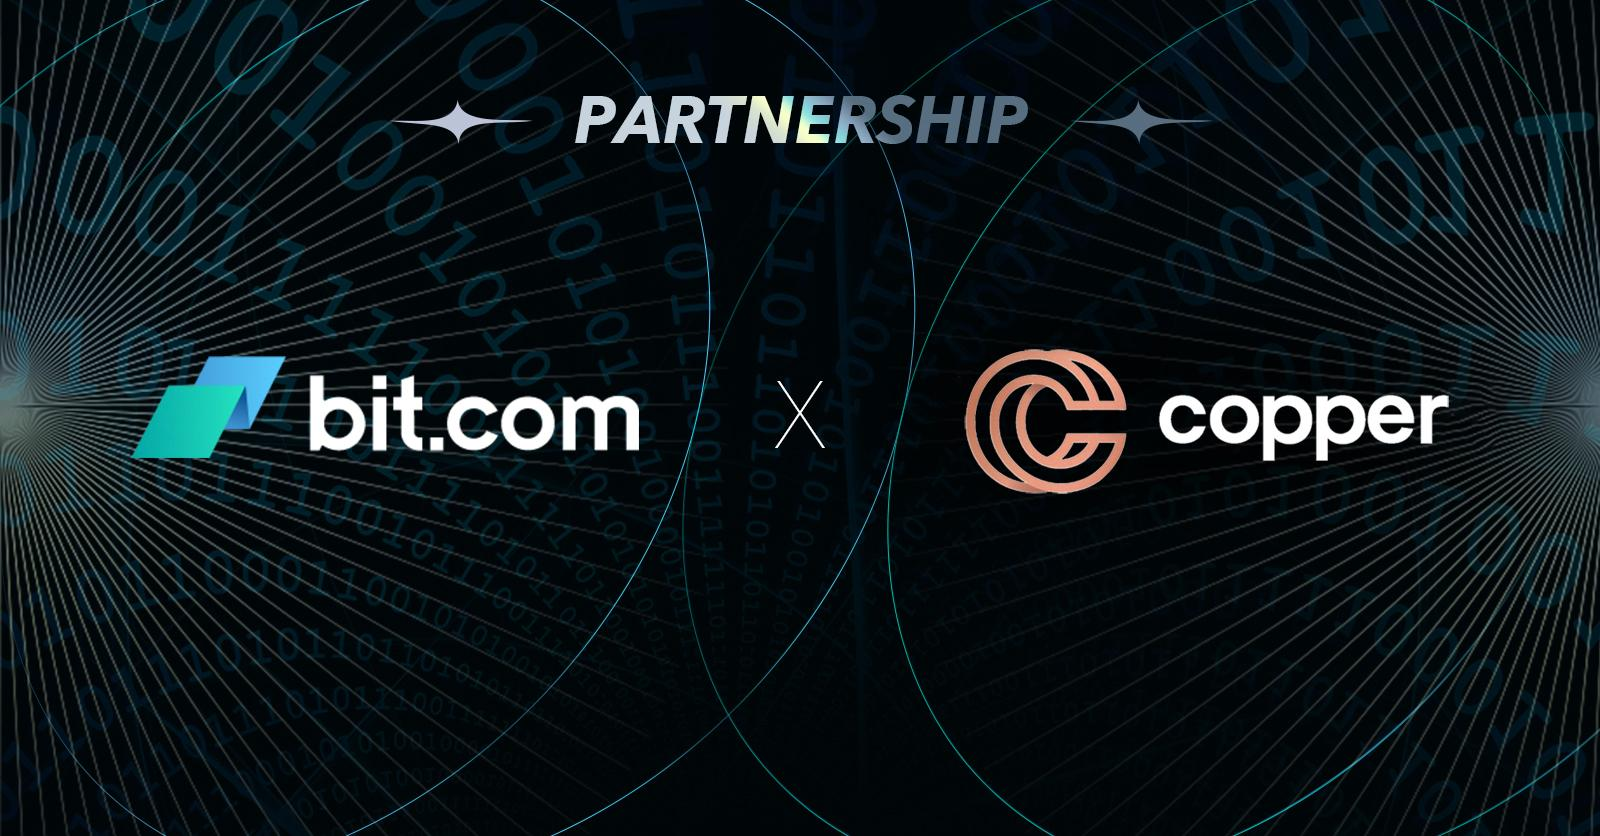 Bit.com Integrates with Copper ClearLoop to Offer Instant Access and Zero Counterparty Risk Off-Exchange Settlement